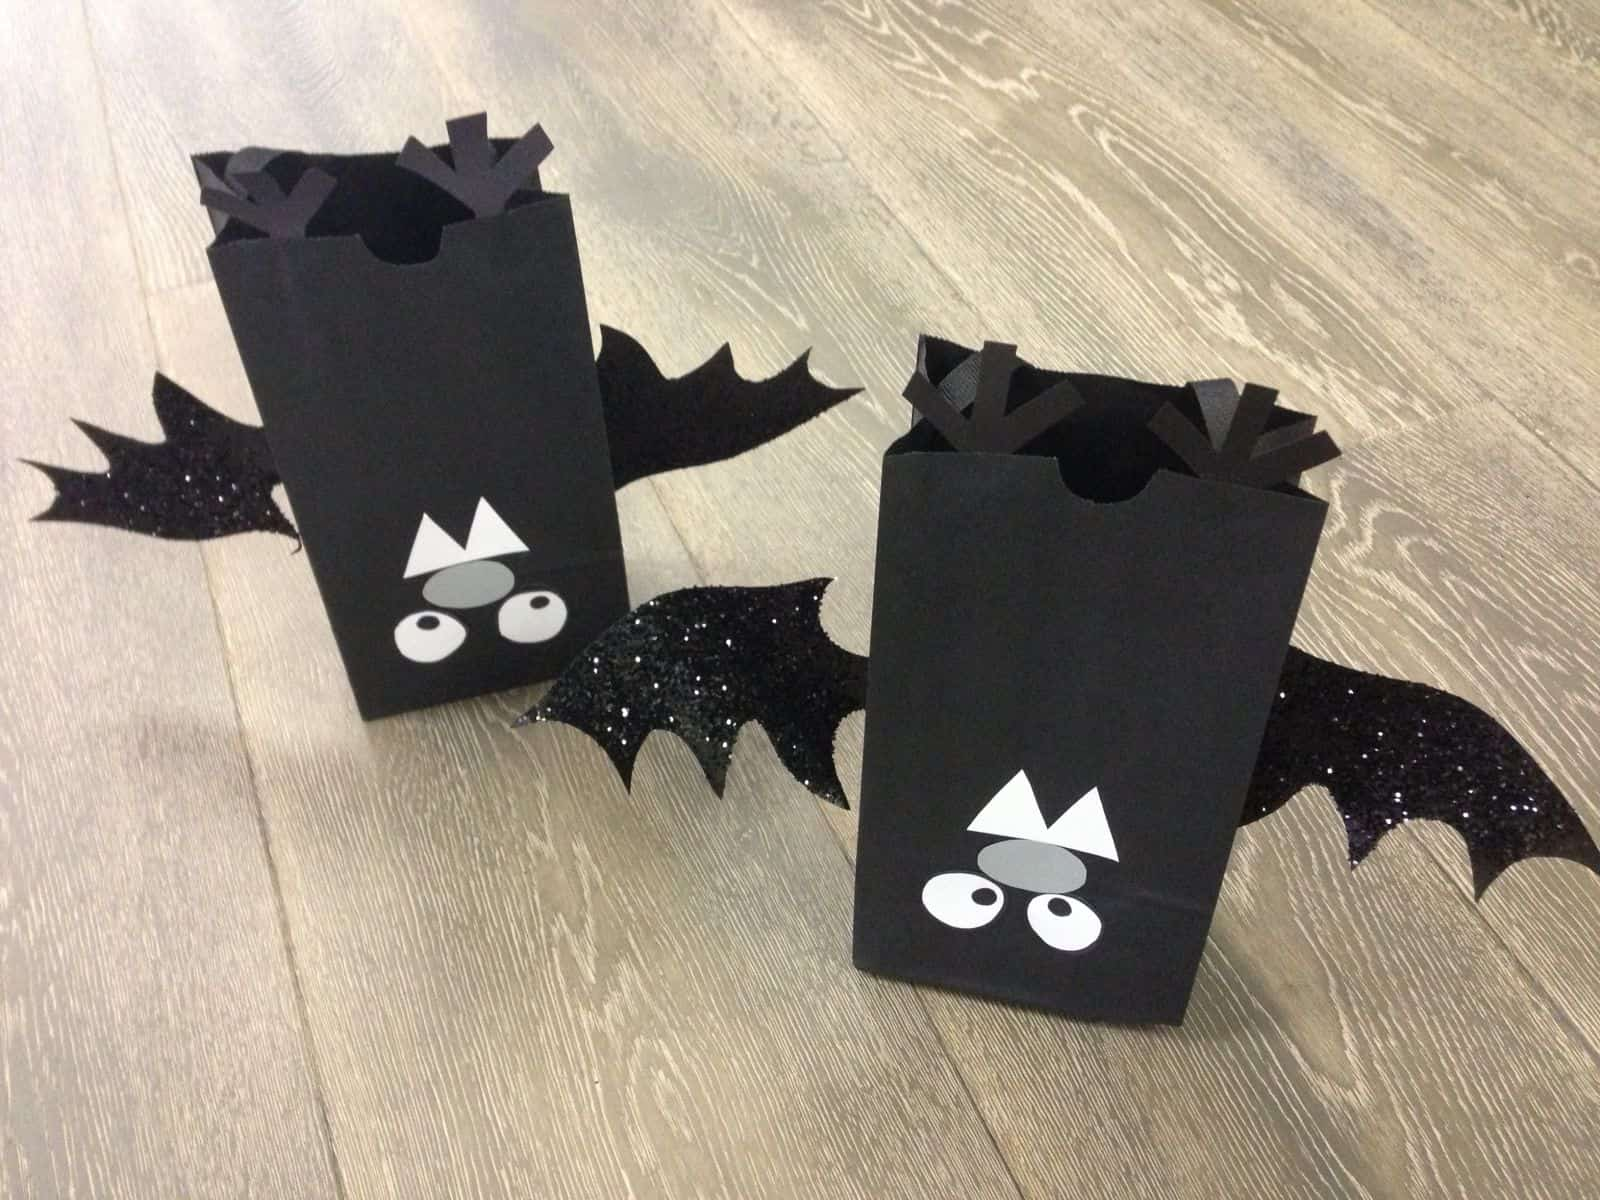 Diy Halloween Trick Or Treat Bags.Diy Candy Bags For Halloween